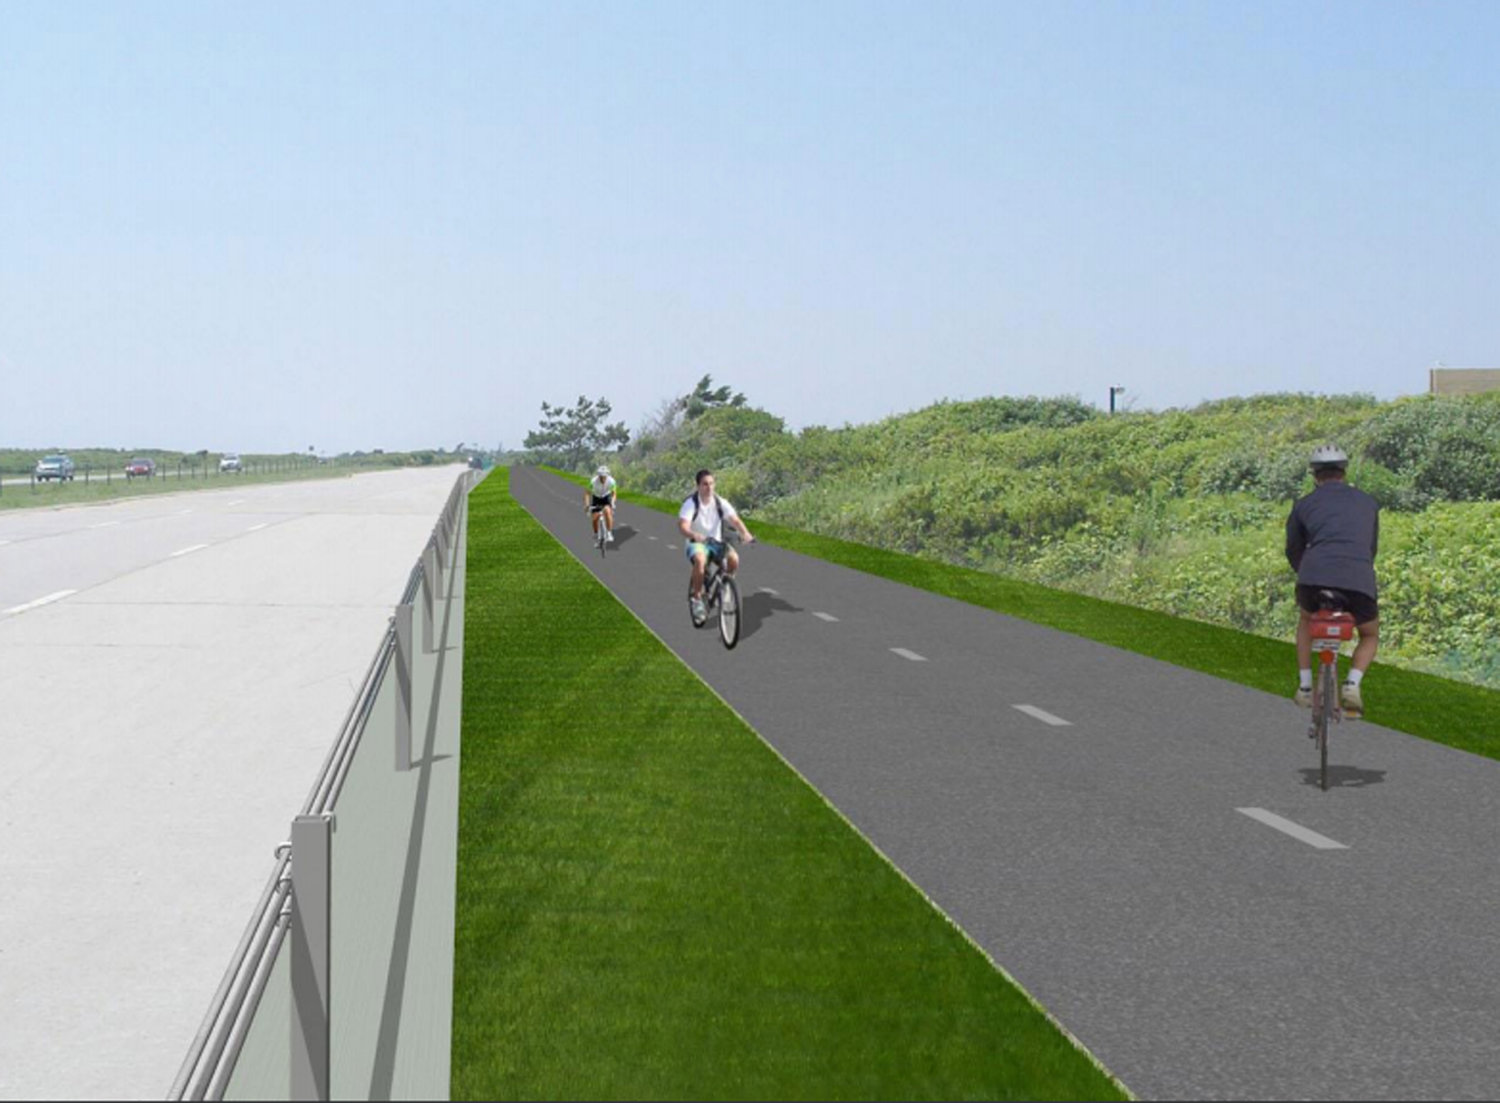 The Ocean Parkway Coastal Greenway Shared Use Path was approved for a 10-mile, $16.2 million extension to Captree State Park, which is expected to be completed in the summer of 2021.